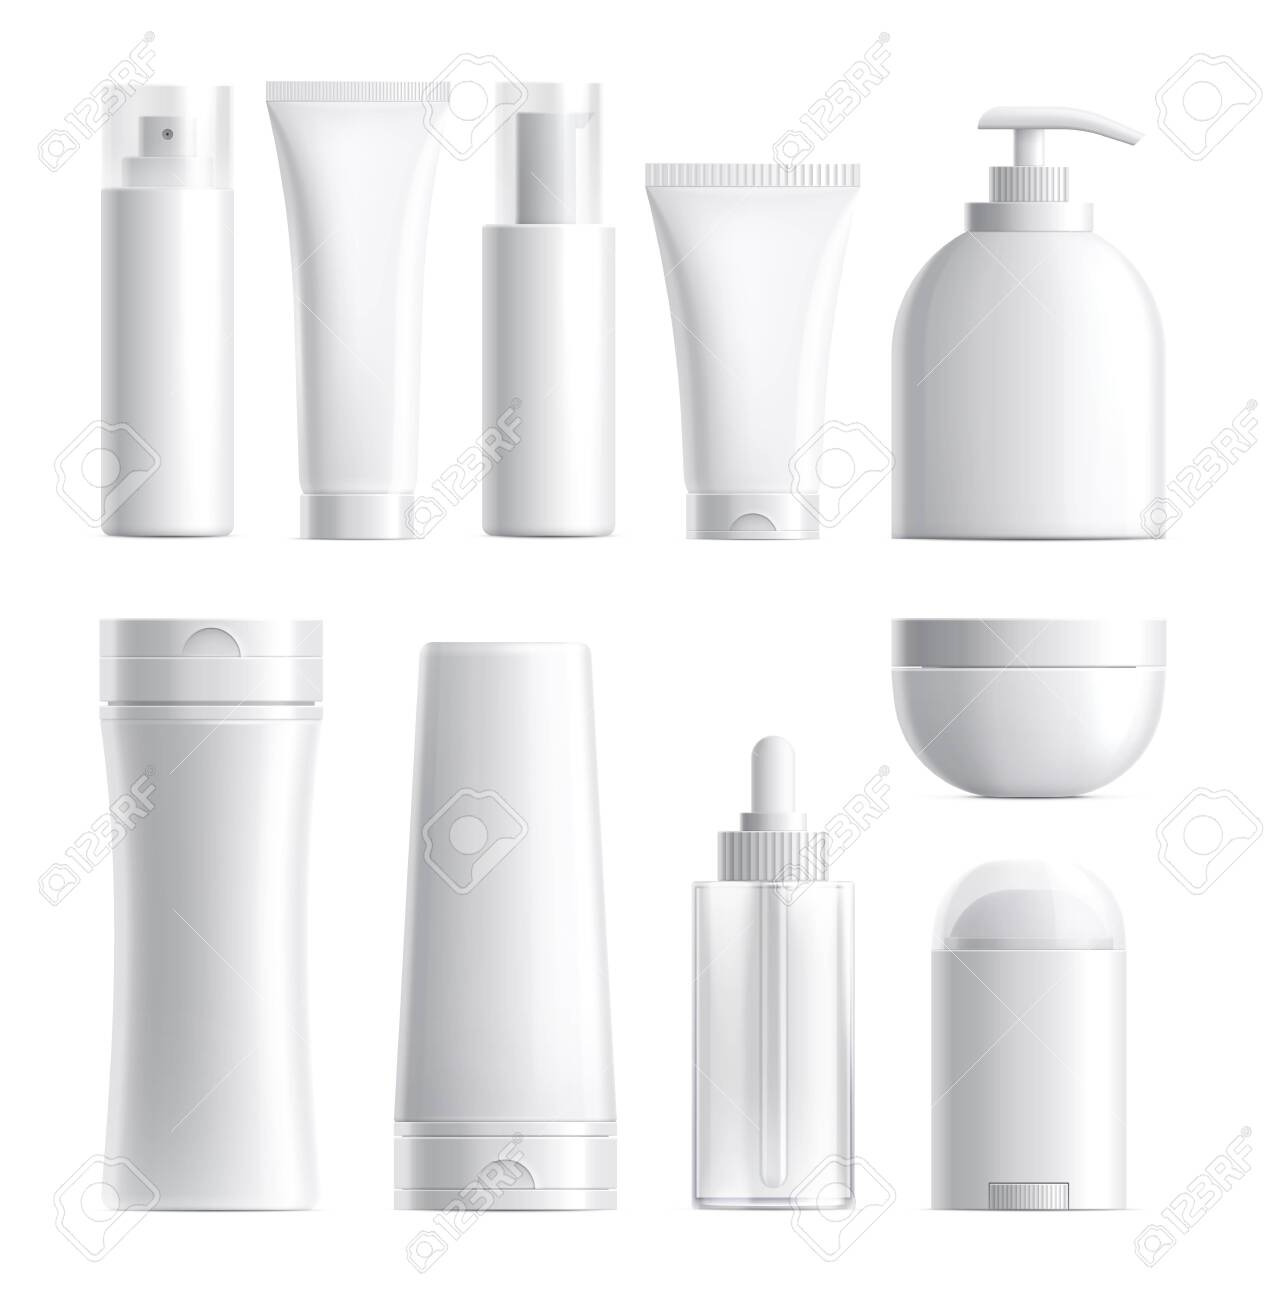 Cosmetics package. Isolated bottle mockup. Realistic blank beauty products plastic glass container. 3d skin care tube cream jar vector set. Cosmetic cream, tube product mockup, container illustration - 148711301